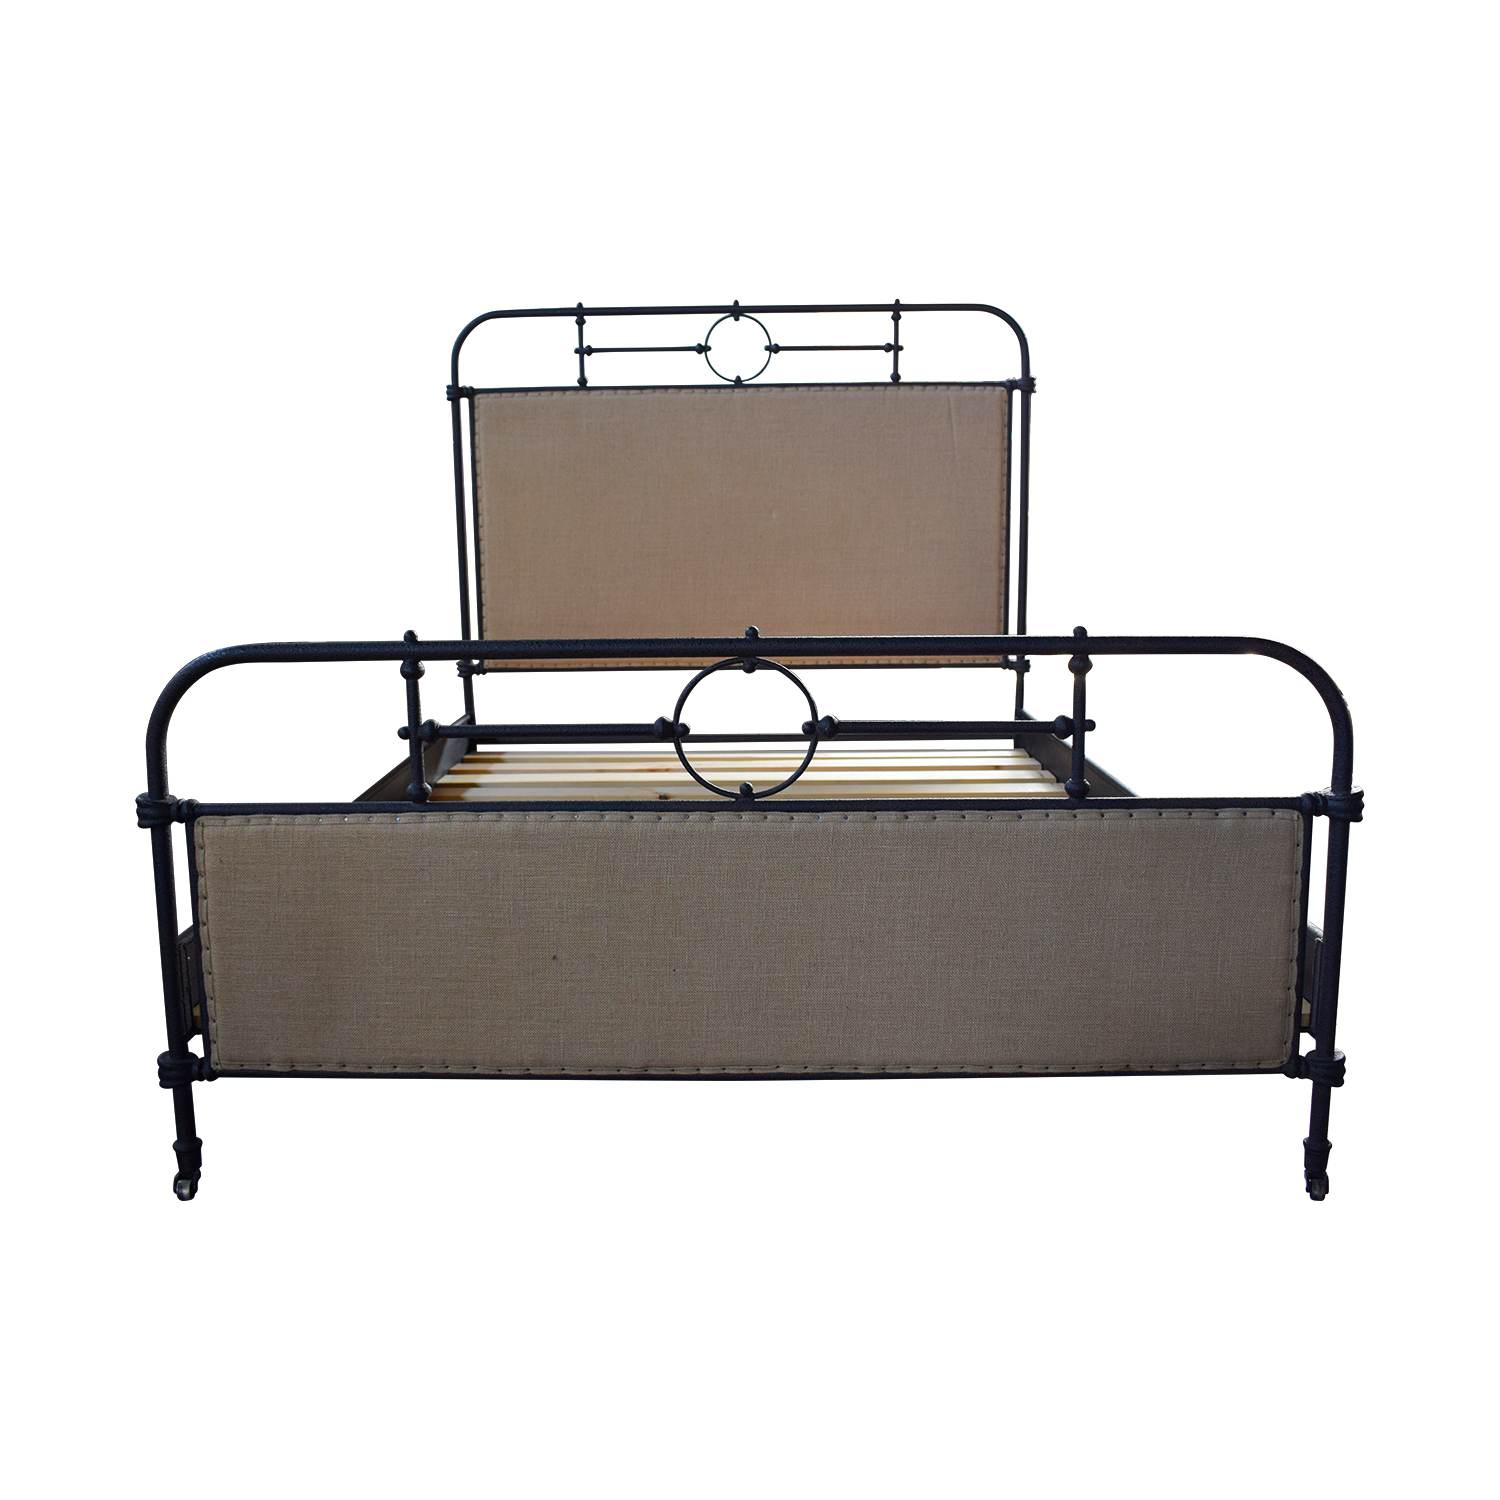 ABC Home Upholstered Metal Queen Bed / Beds